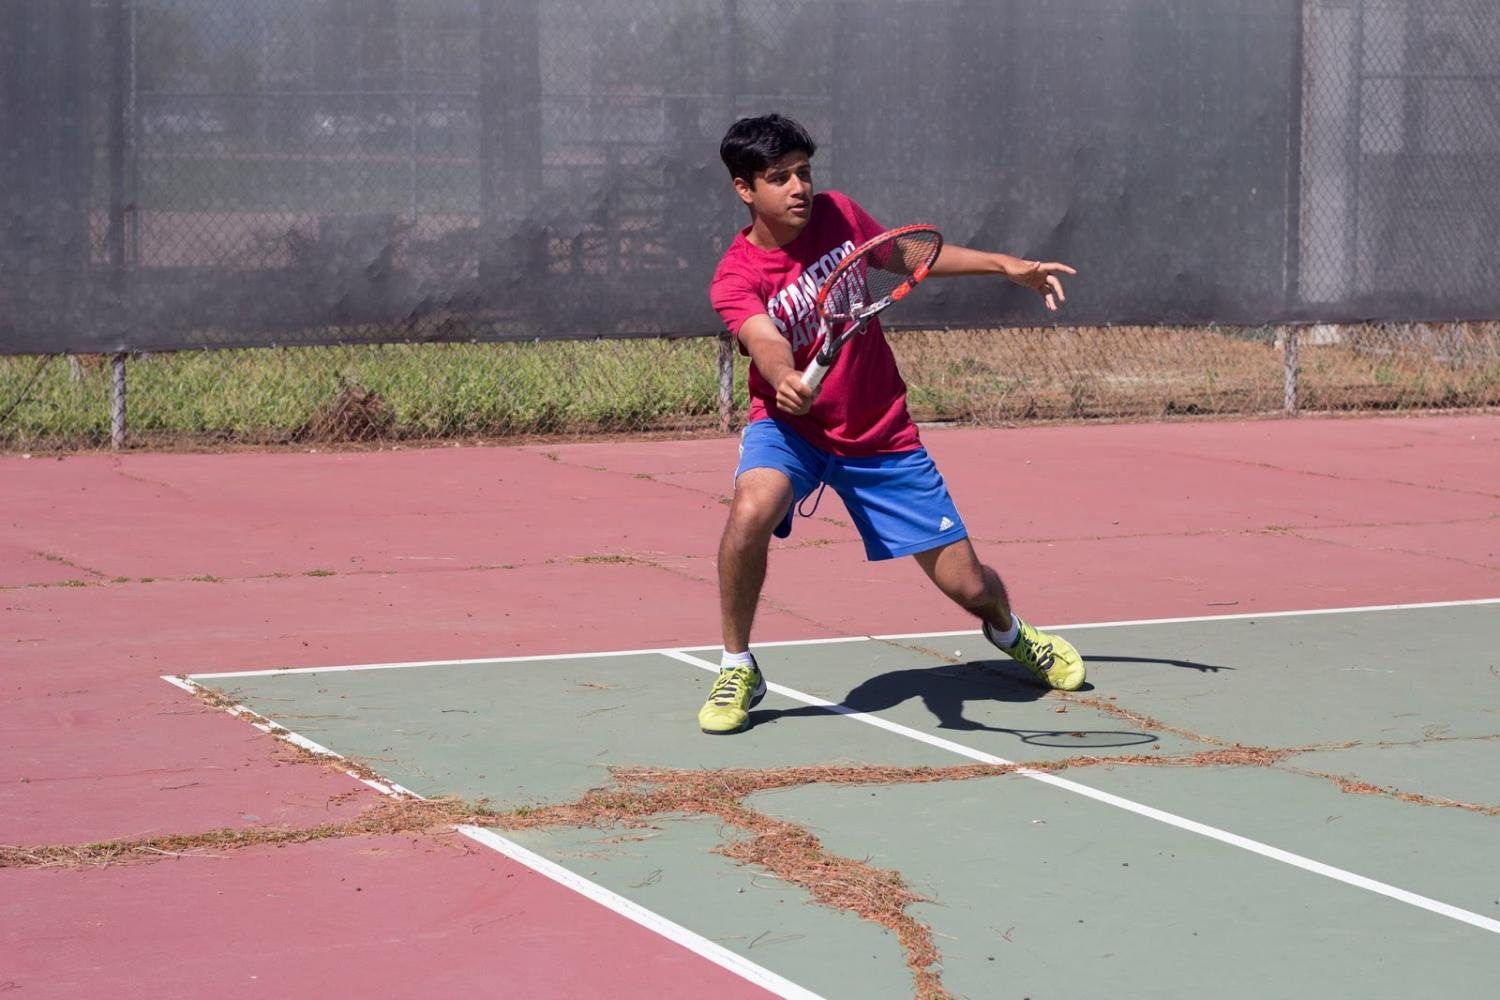 Co-captain+Jay+Pandit+%2812%29%2C++a+varsity+singles+player+finishes+a+forehand+during+practice%2C+stepping+over+the+numerous+cracks+on+the+courts+that+haven%27t+been+resurfaced+in+20+years.%0A